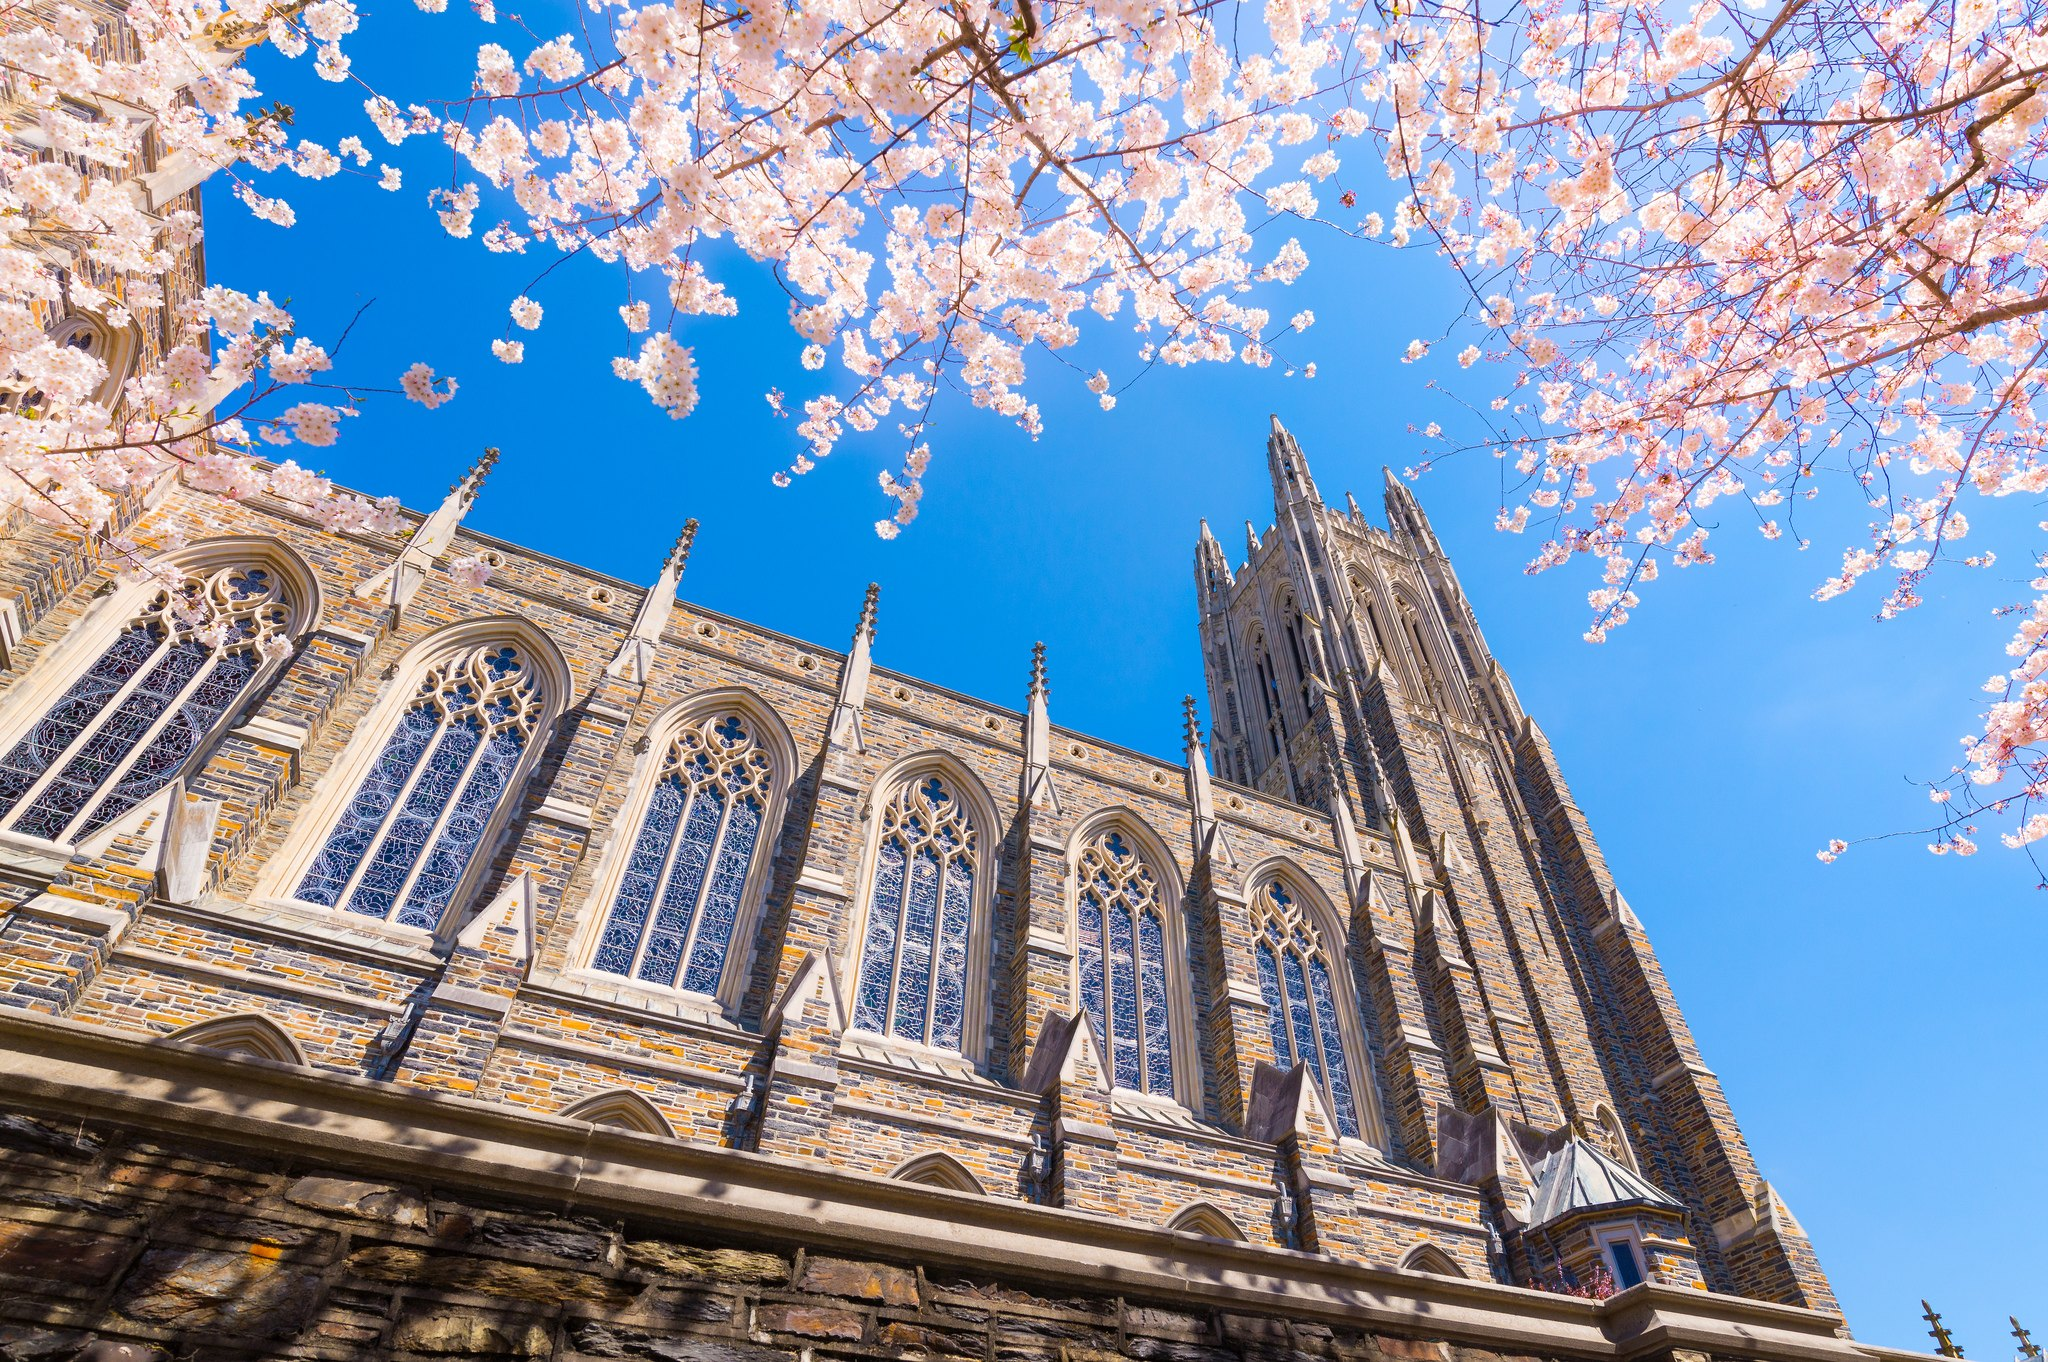 duke-university-flickr-theomania-most-beautiful-college-campuses